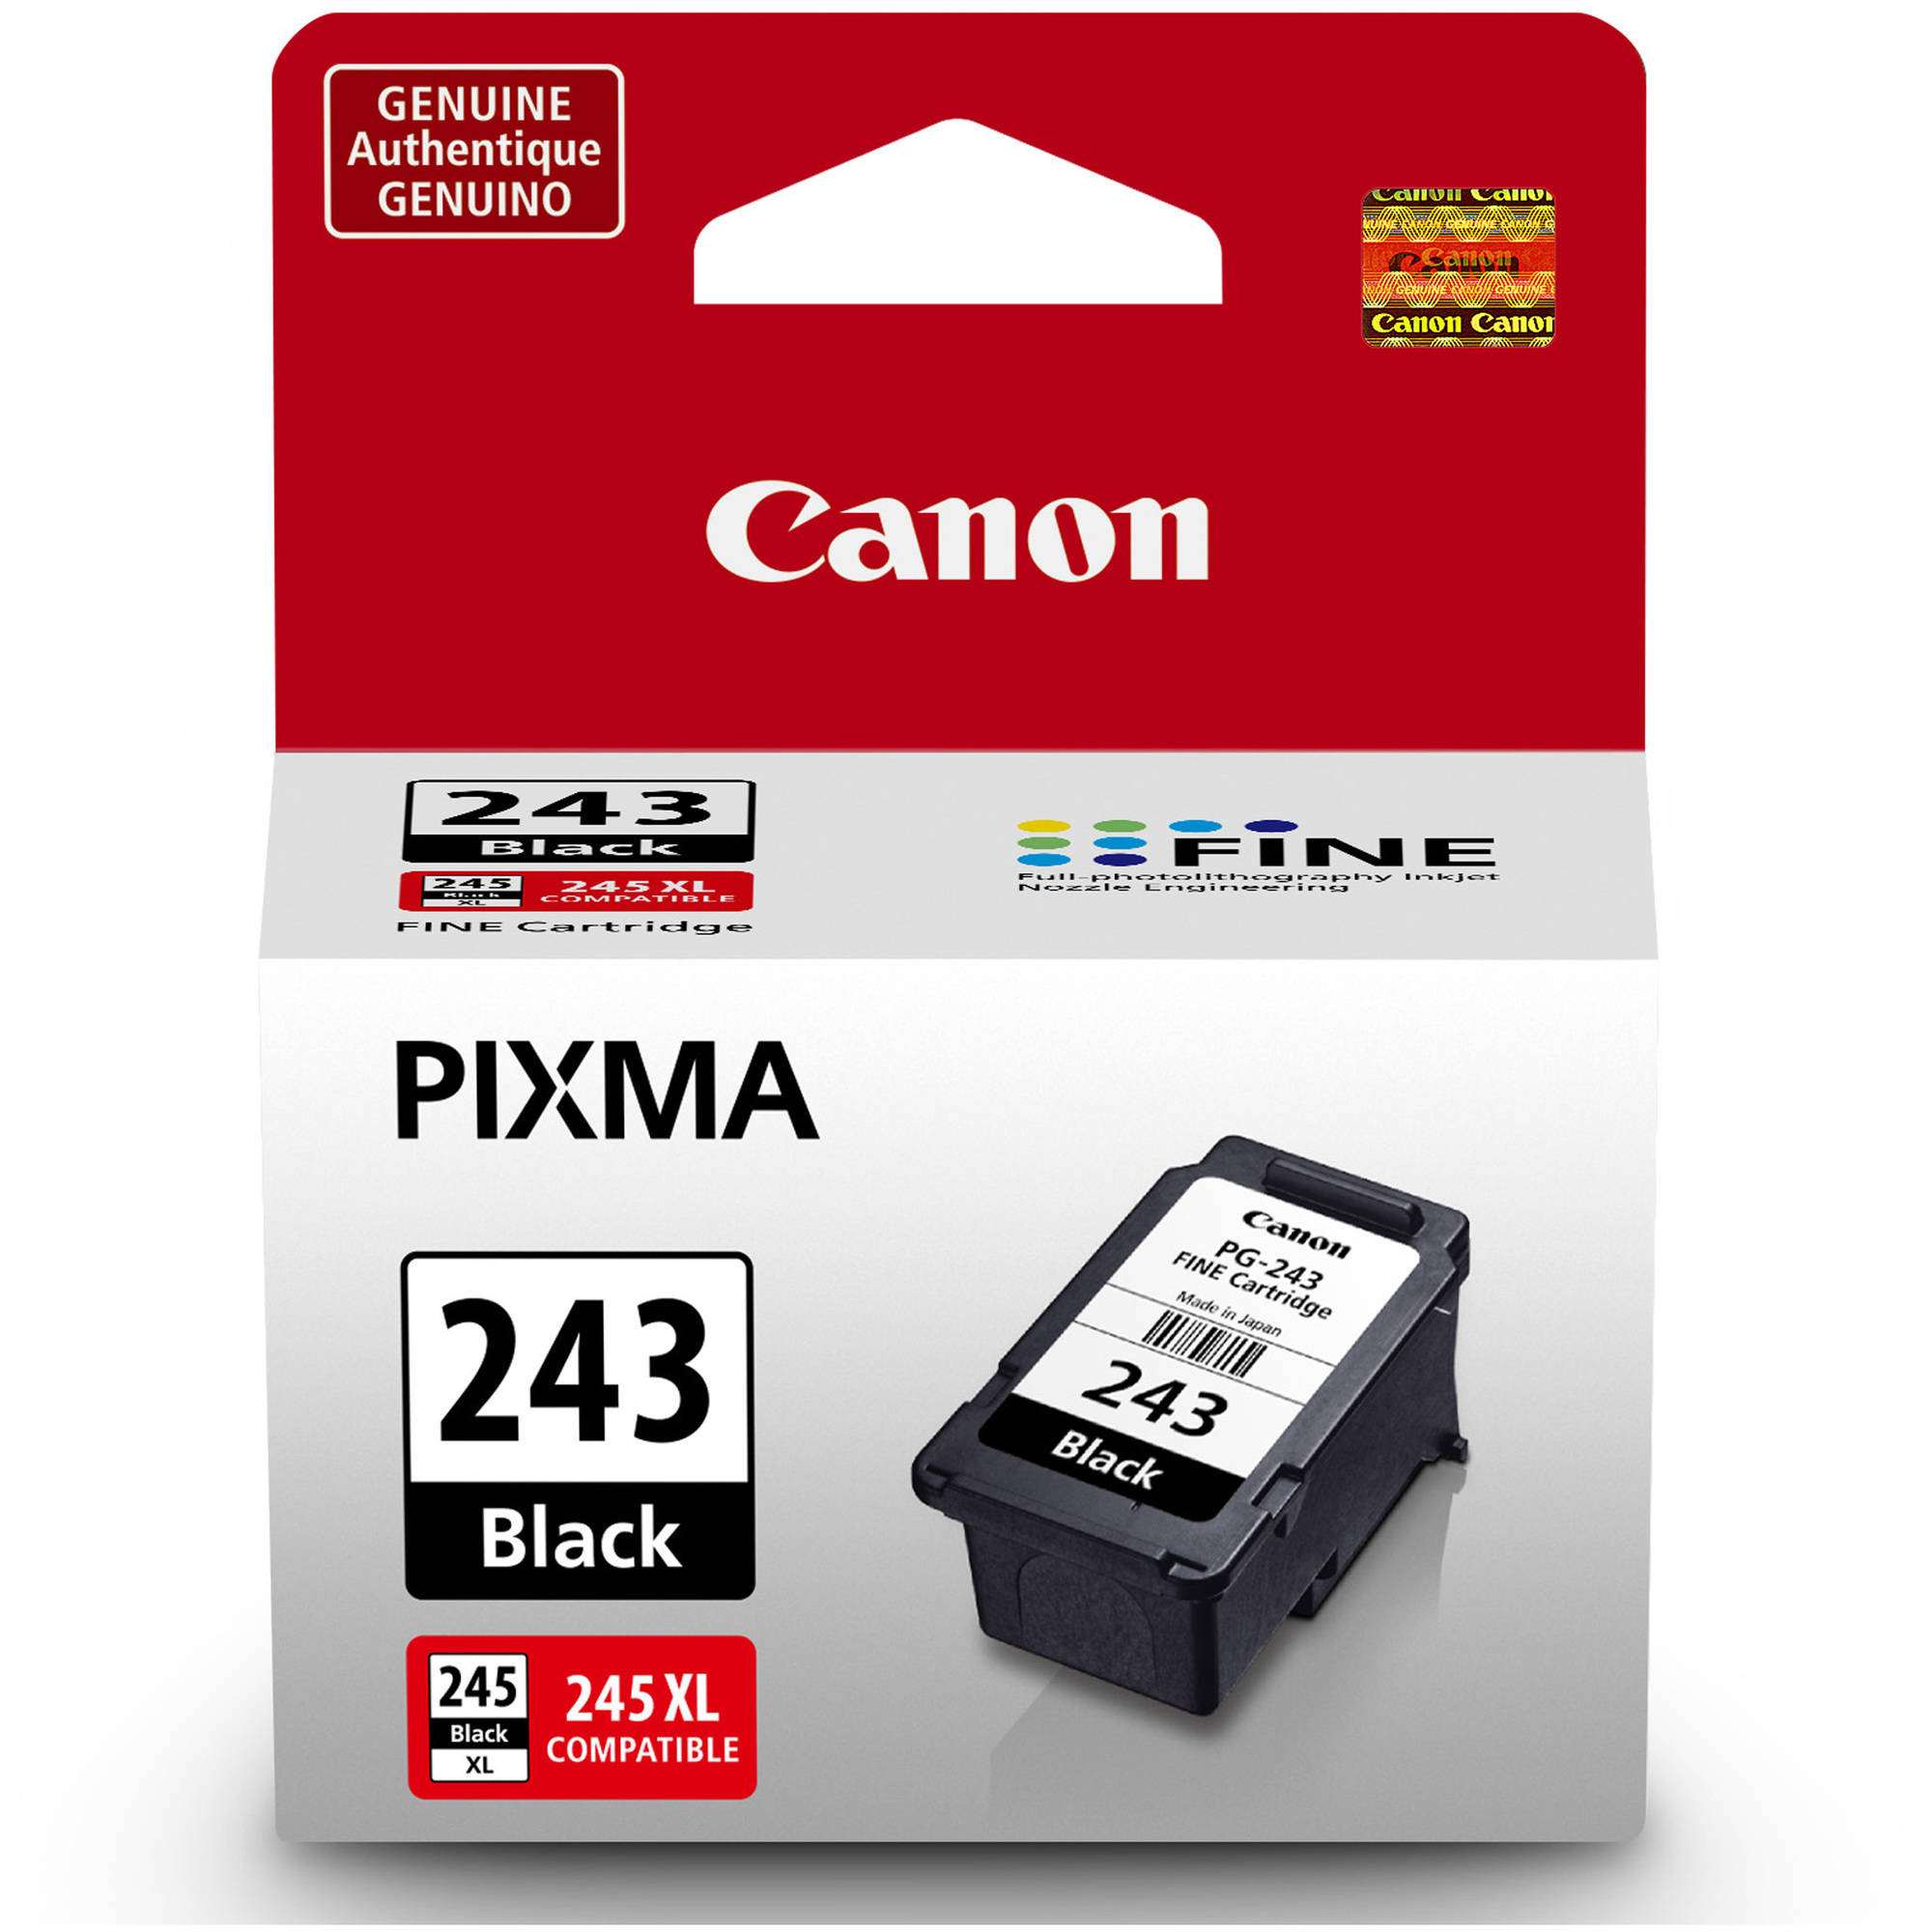 Canon PG-243 Pigment Black Ink Cartridge